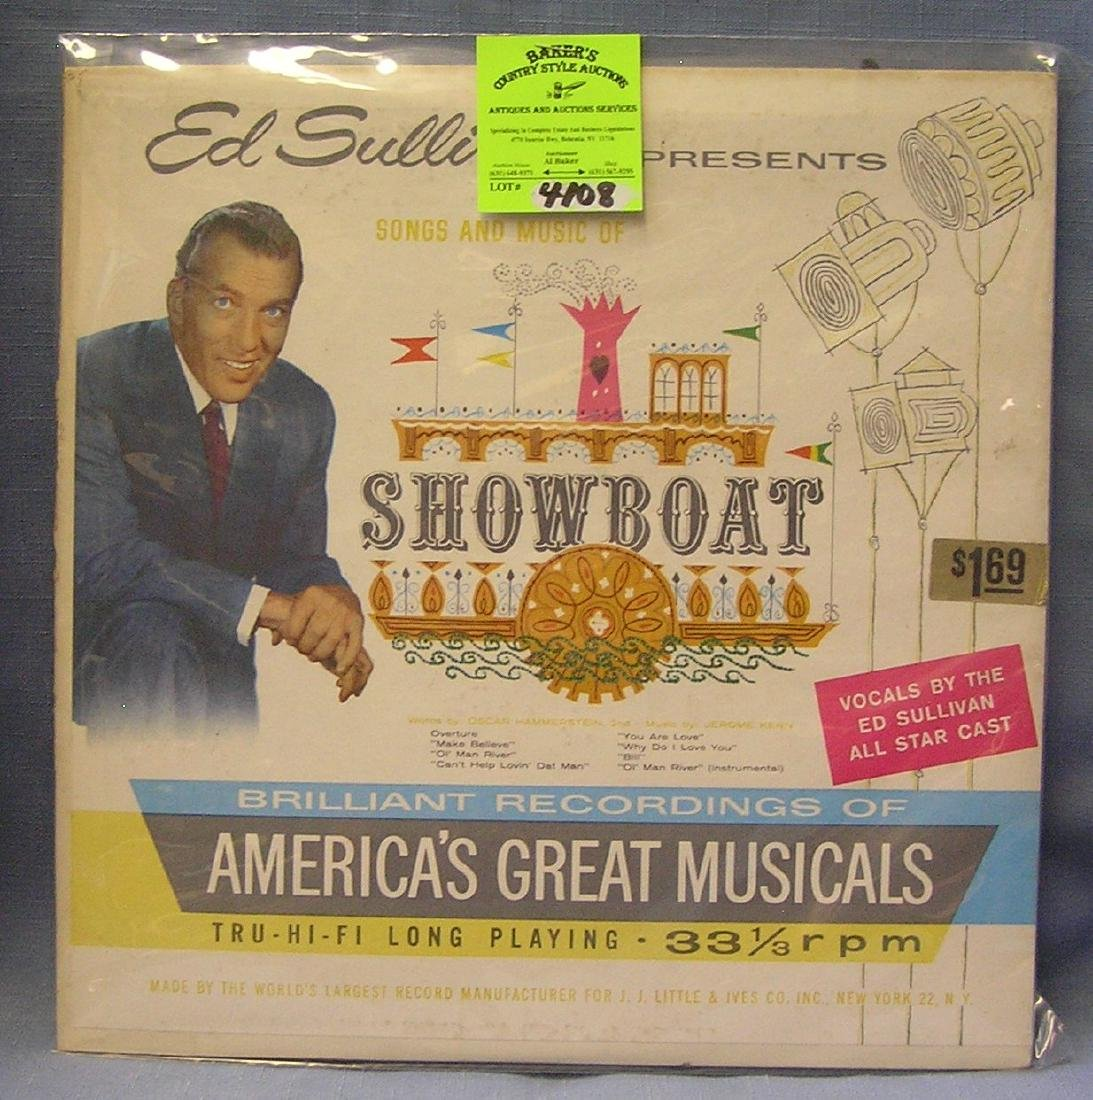 Ed Sullivan Songs And Music Of Showboat record